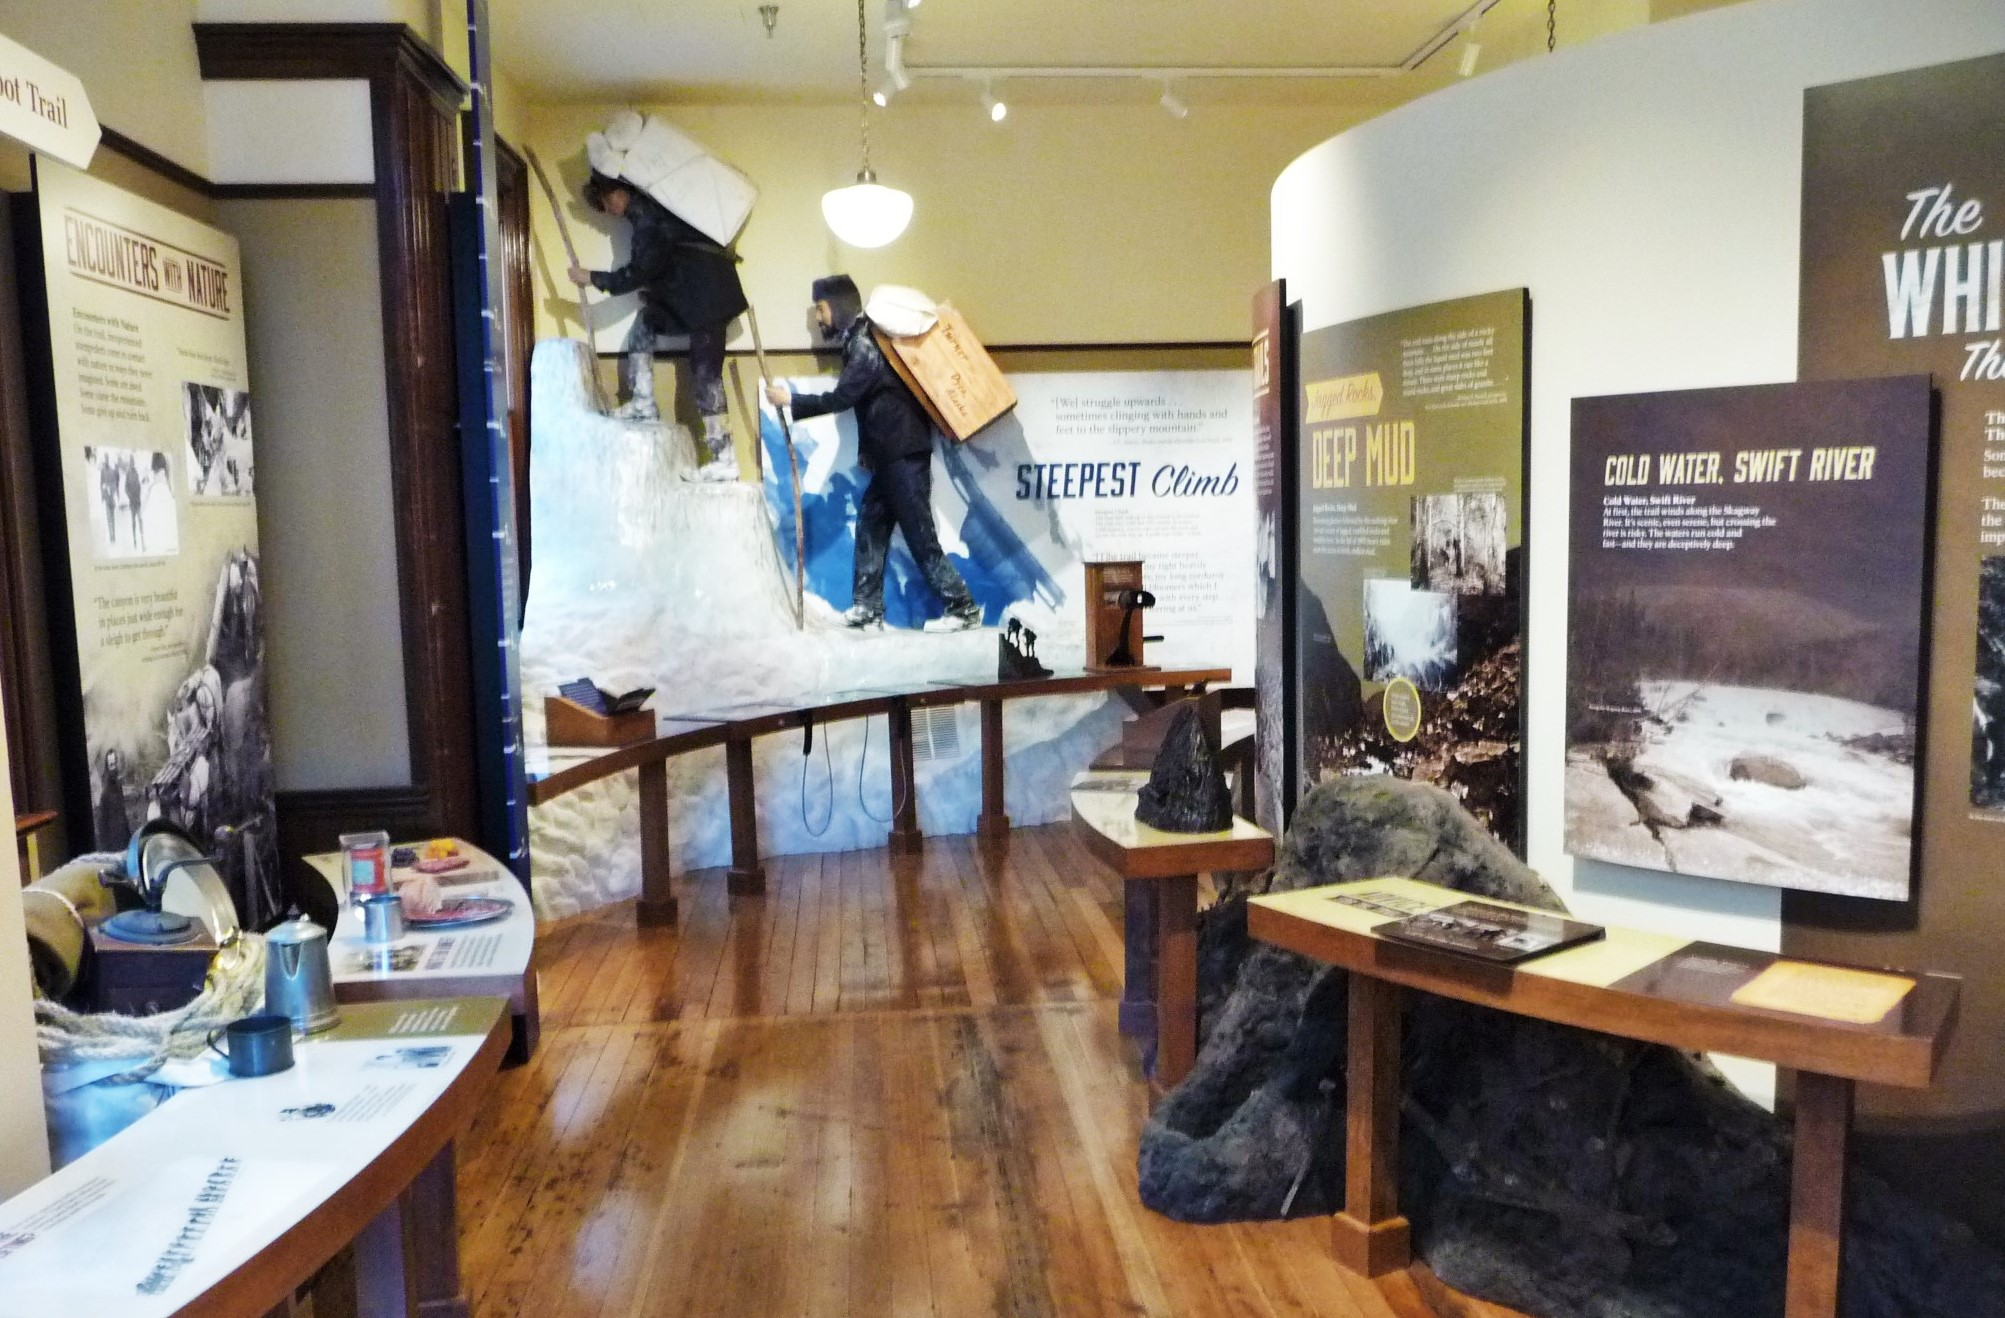 A hallway of exhibits which are located on both sides. At the end is a diorama with two hikers in turn of the 20th century cold-weather hiking gear.